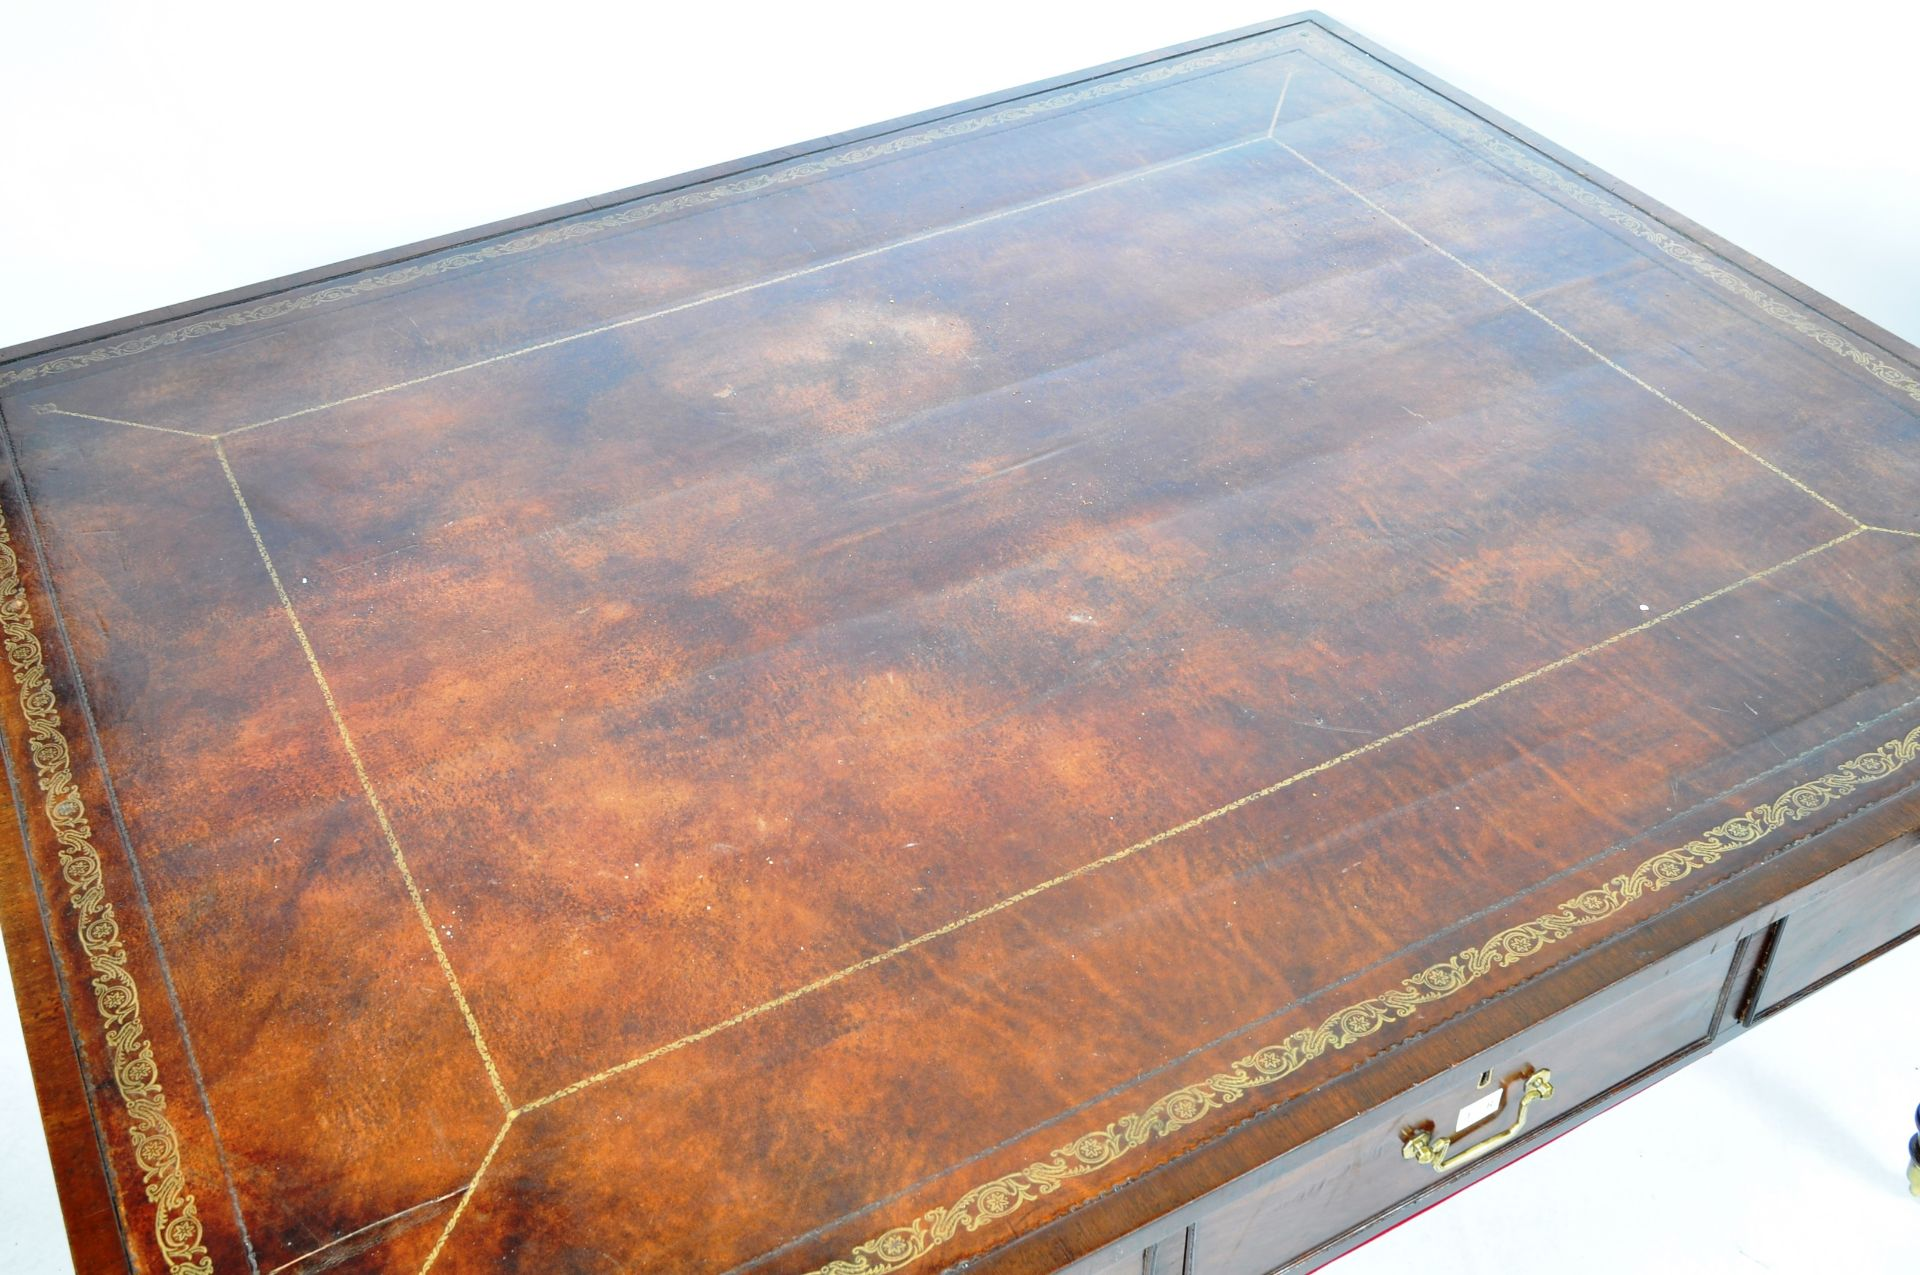 ANTIQUE 19TH CENTURY GILLOWS MANNER PARTNERS DESK LIBRARY TABLE - Image 4 of 9